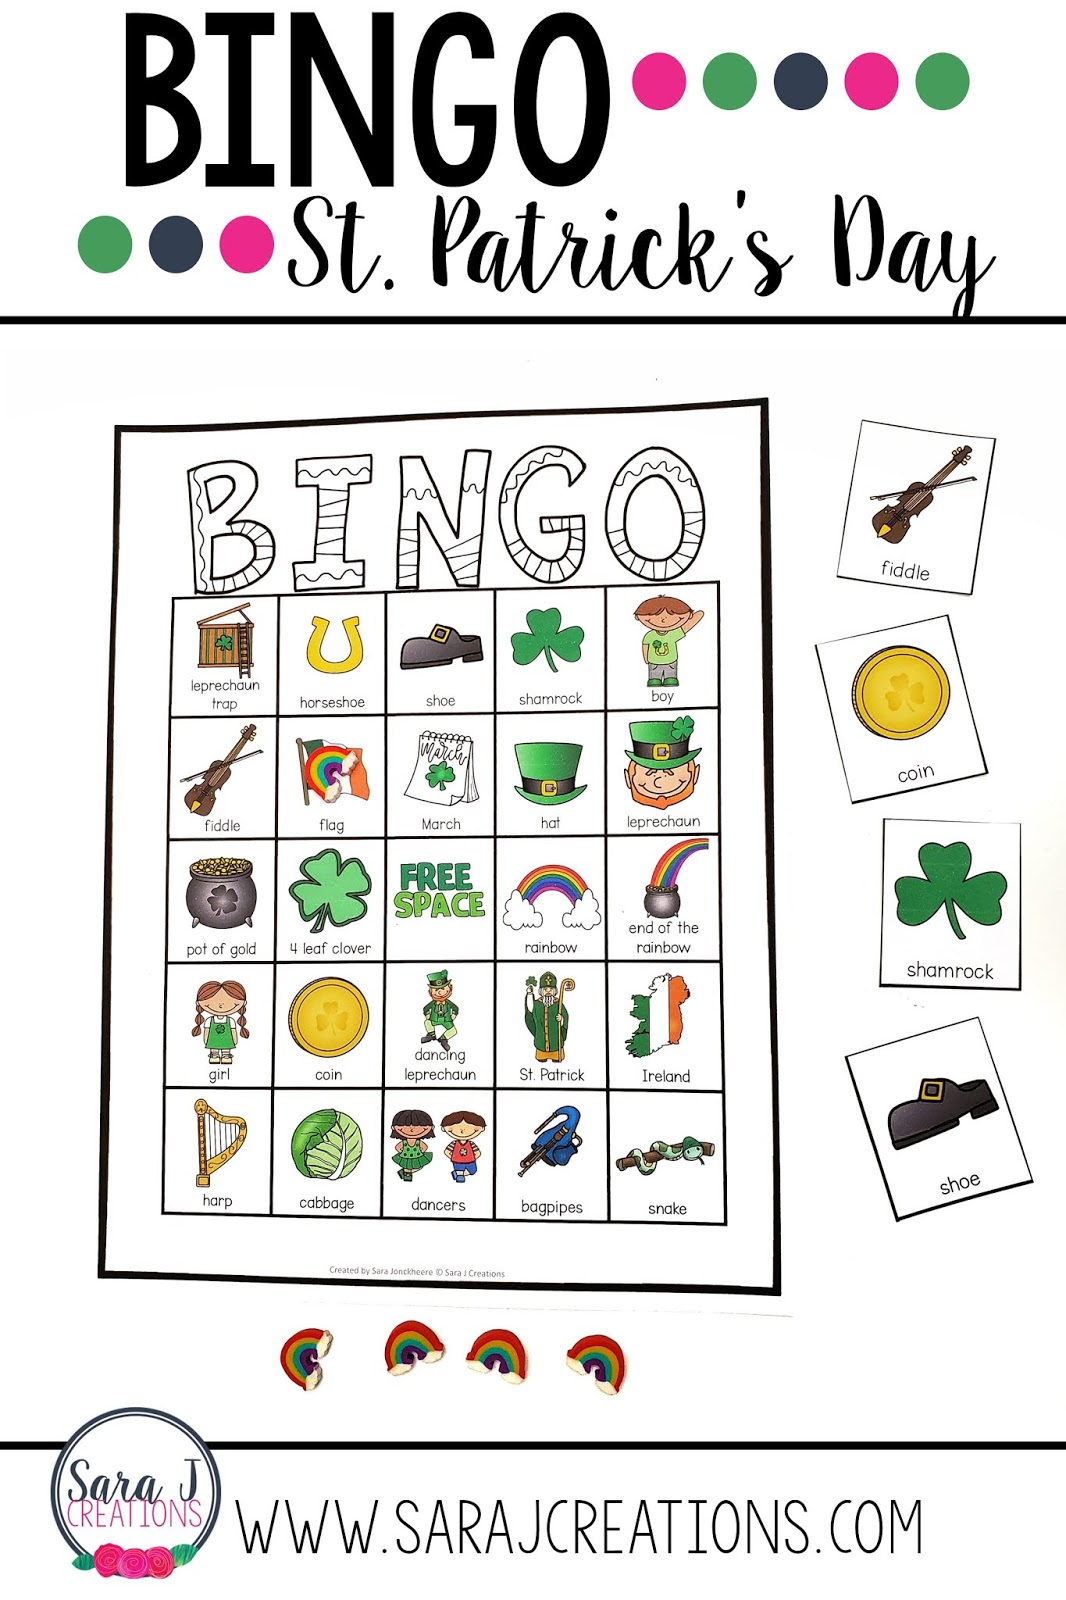 Need a fun activity for your little leprechauns to play on St. Patrick's Day?  Bingo is perfect for that!  With 30 different boards in color and black and white, it is perfect to print and play.